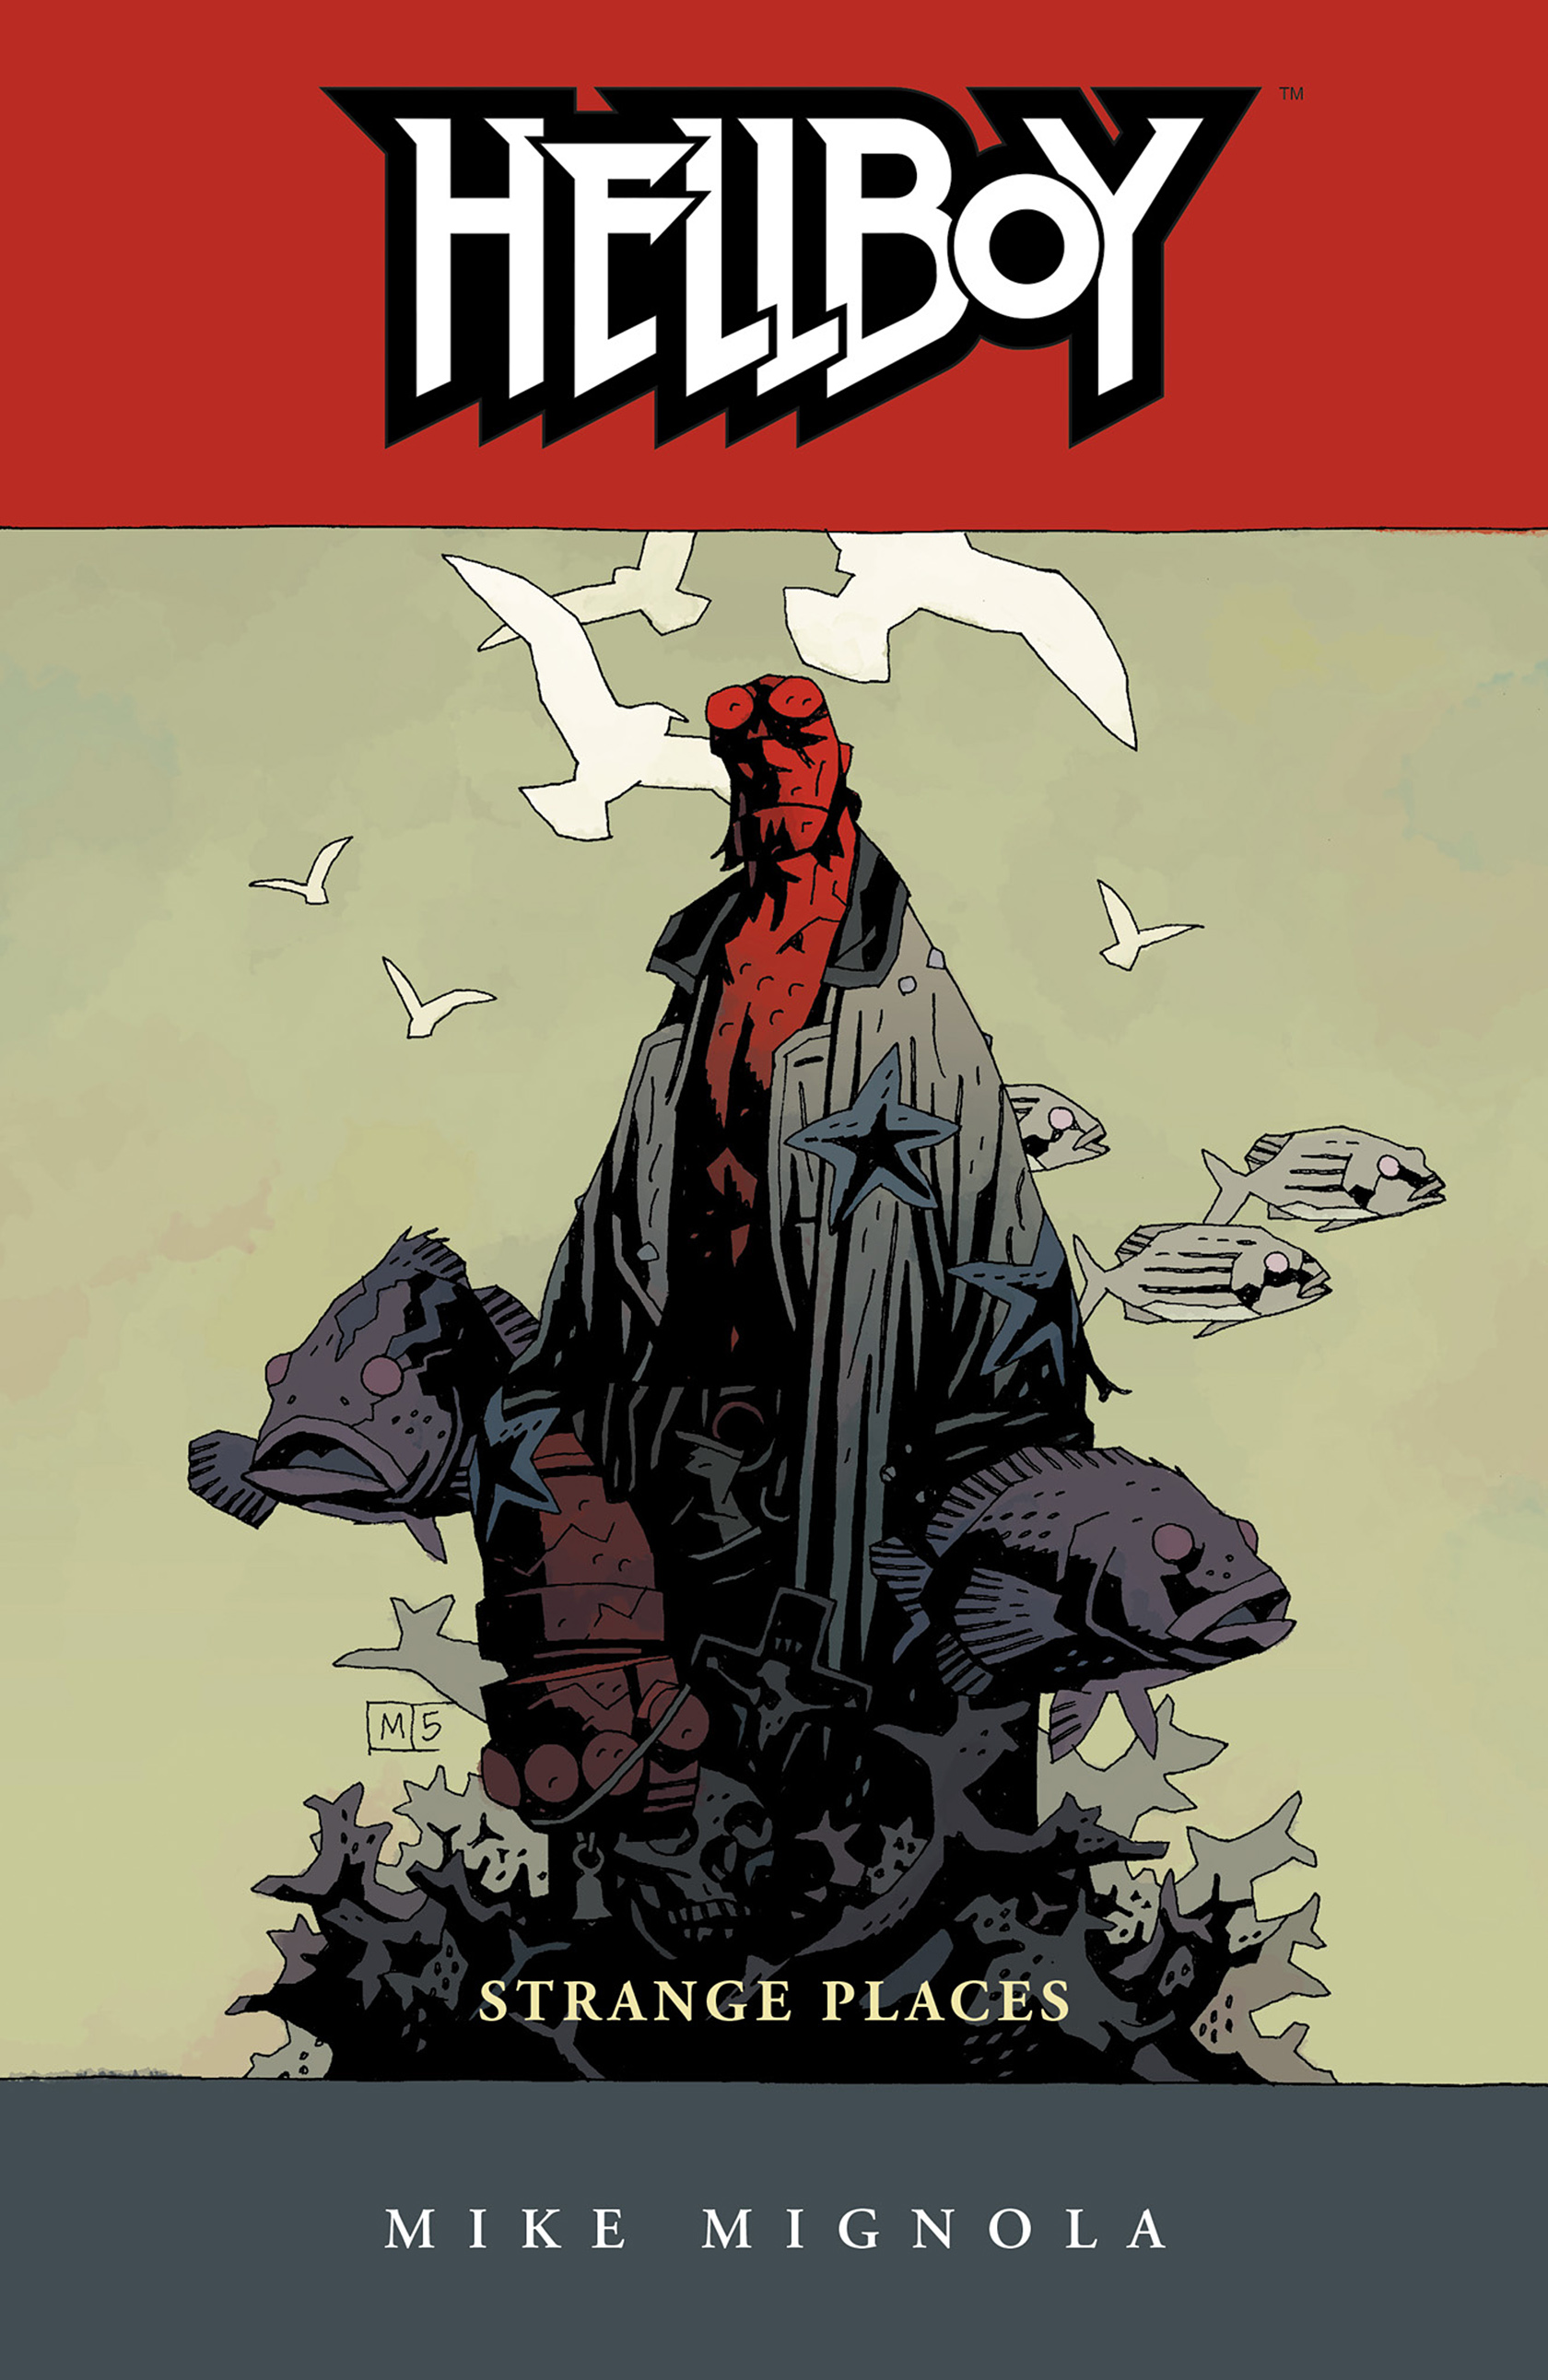 Read online Hellboy: Strange Places comic -  Issue # TPB - 1